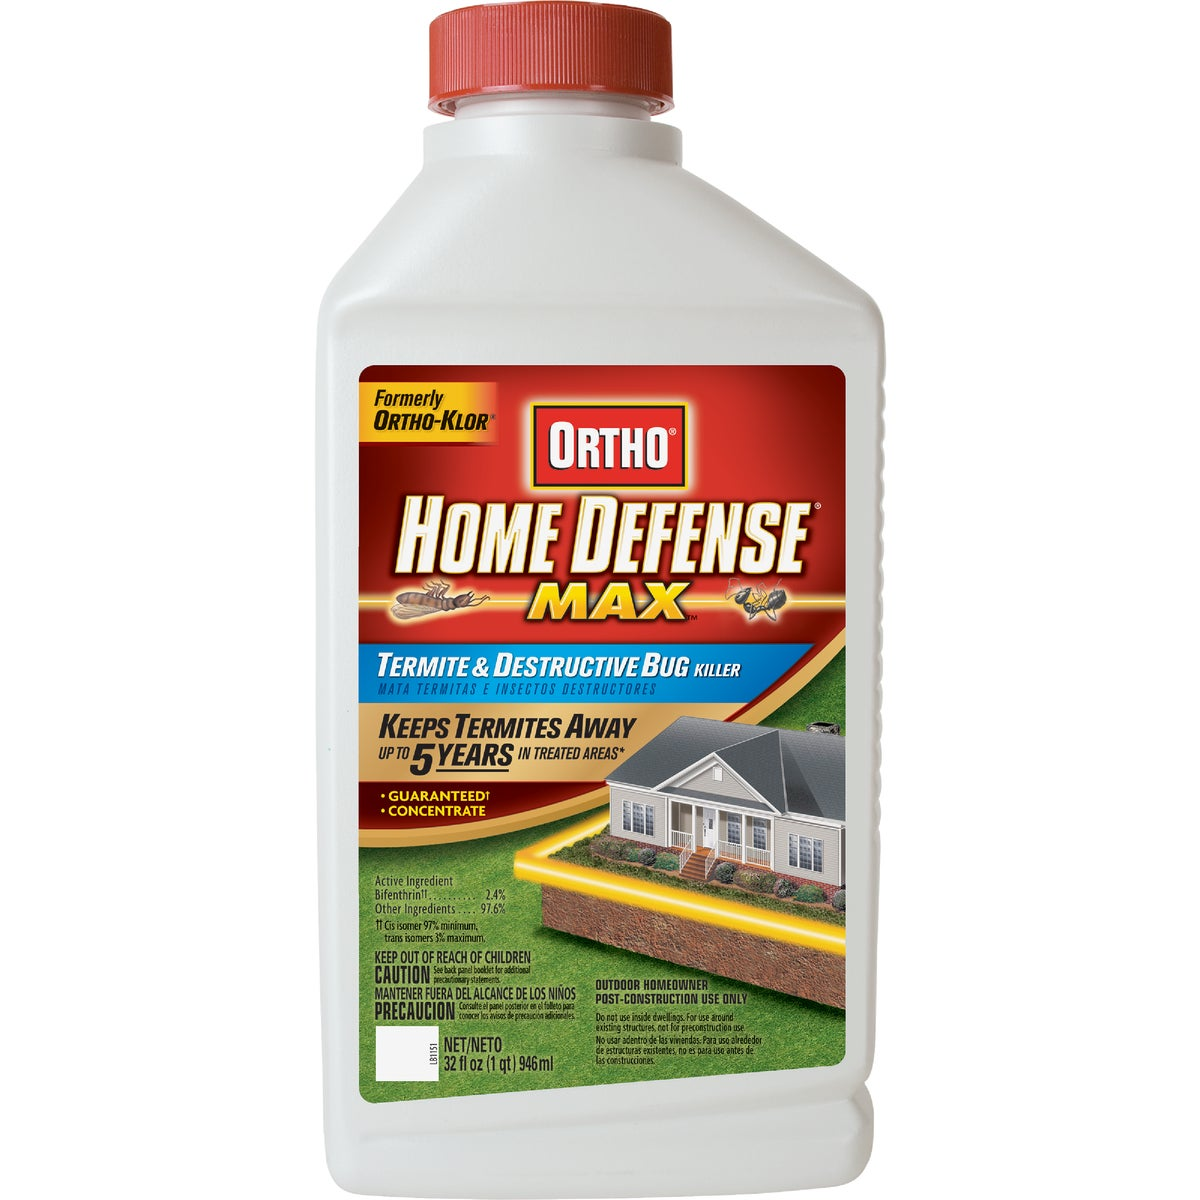 QT TERMITE/D.BUG KILLER